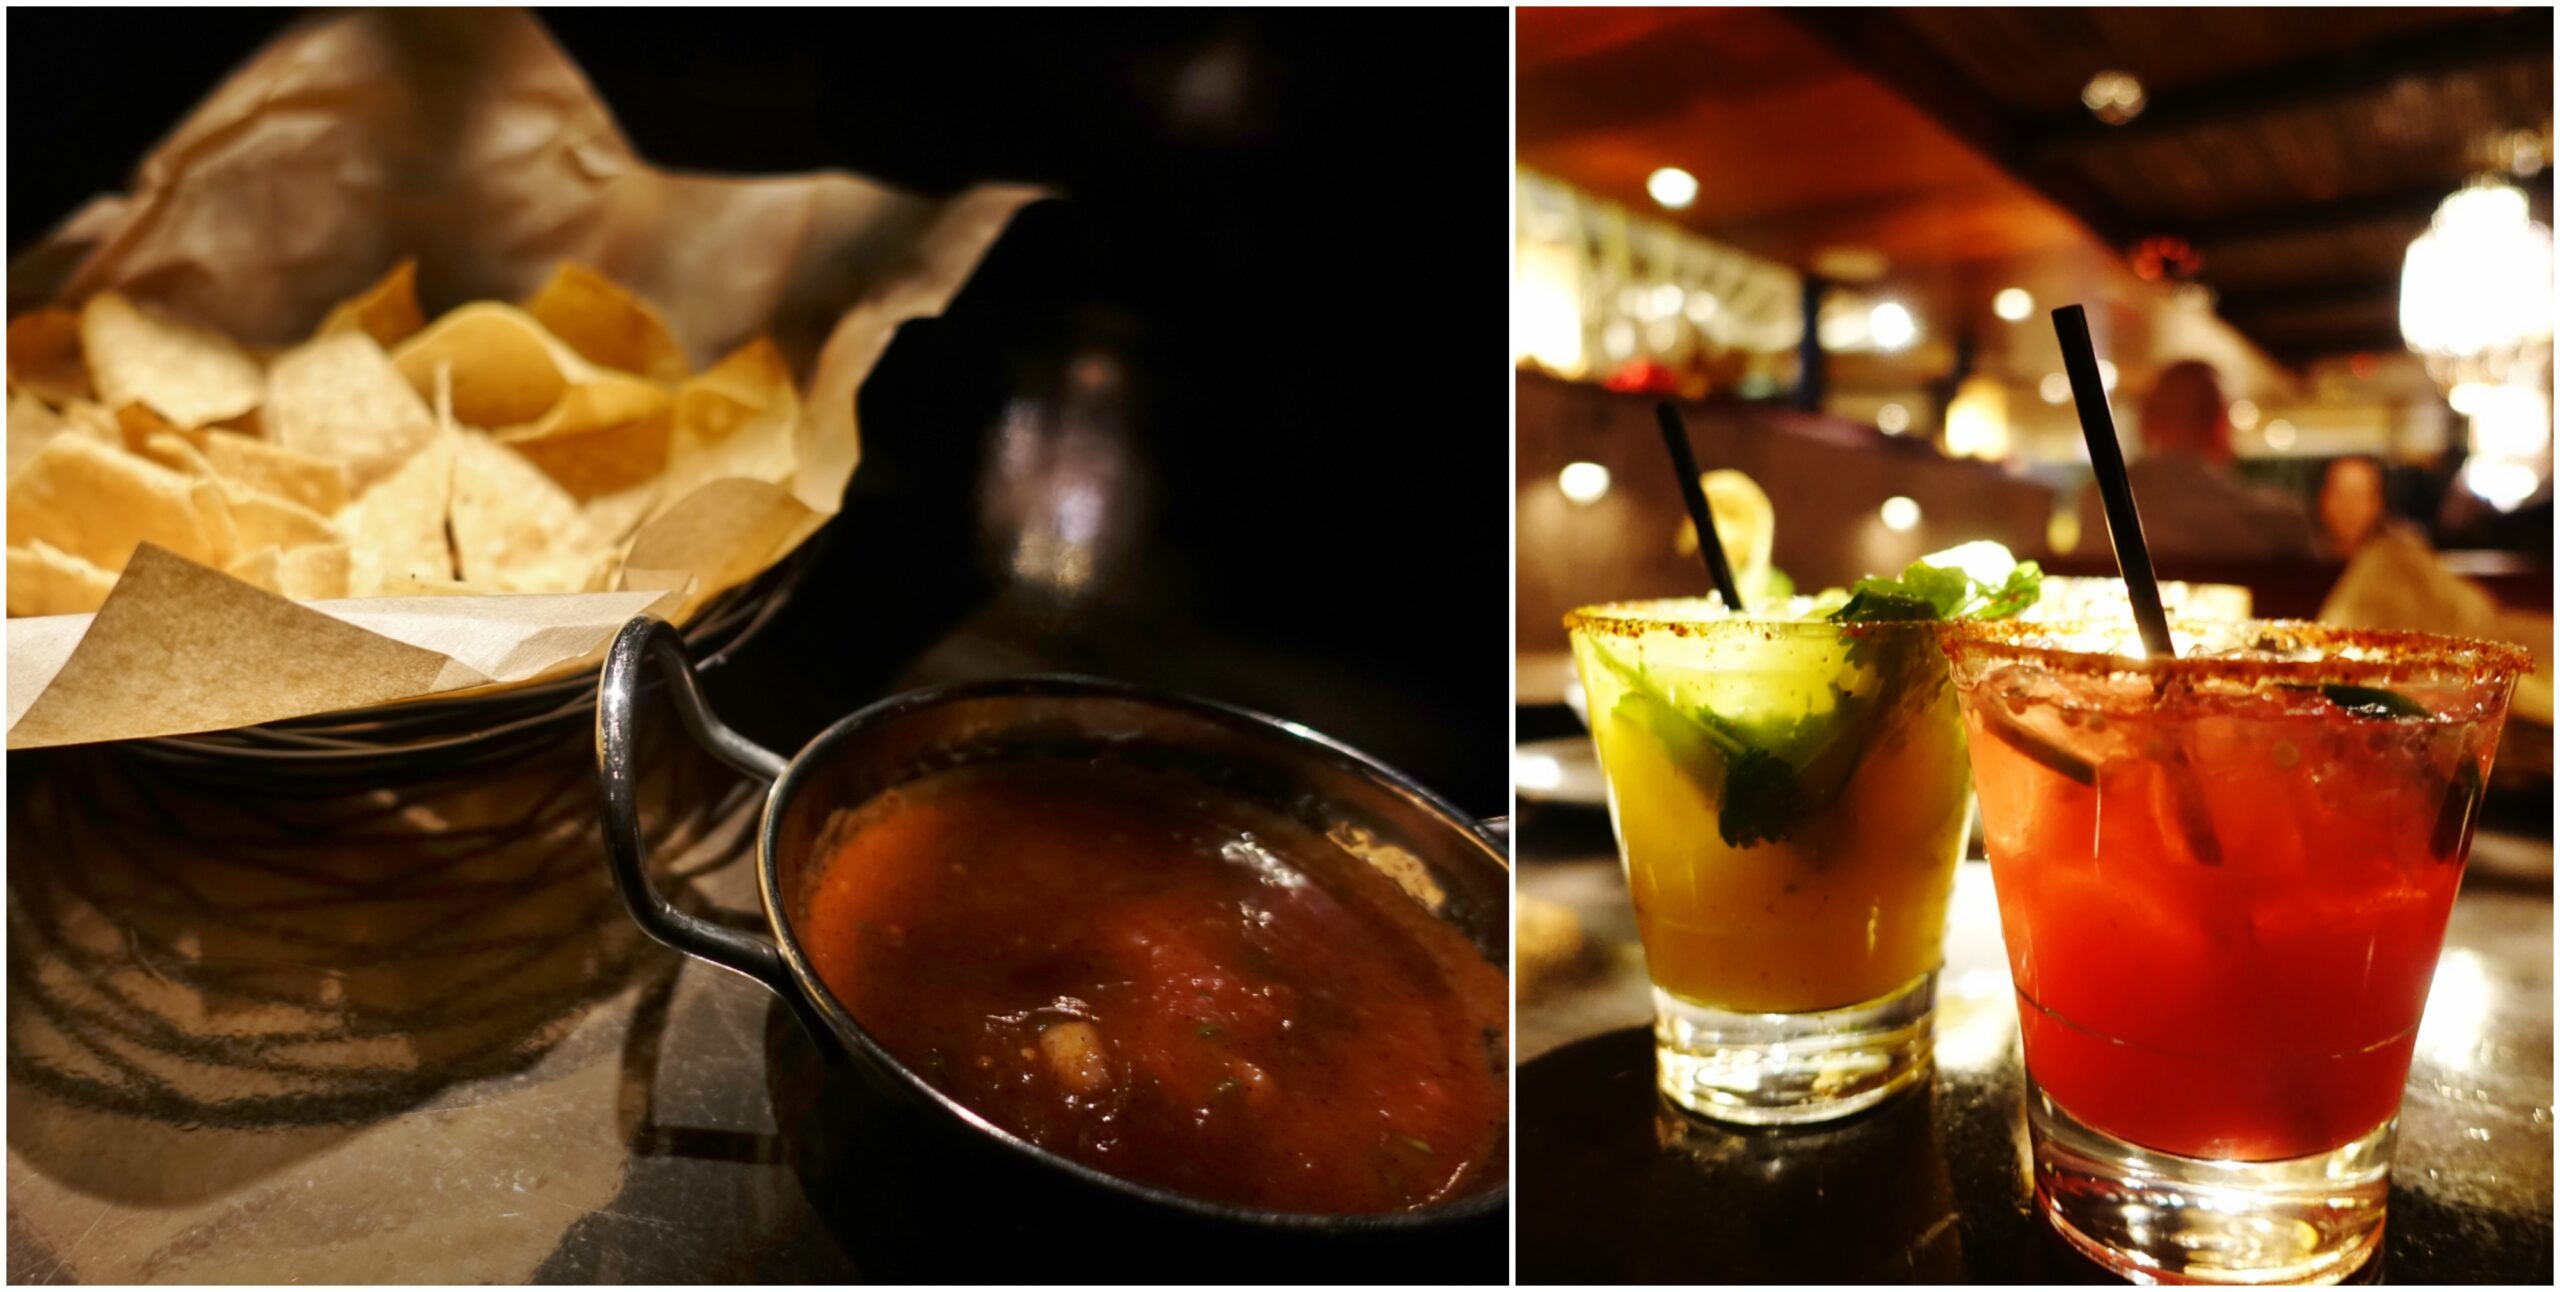 Chips & Salsa, Margaritas - Tortilla Republic, Laguna Beach, CA